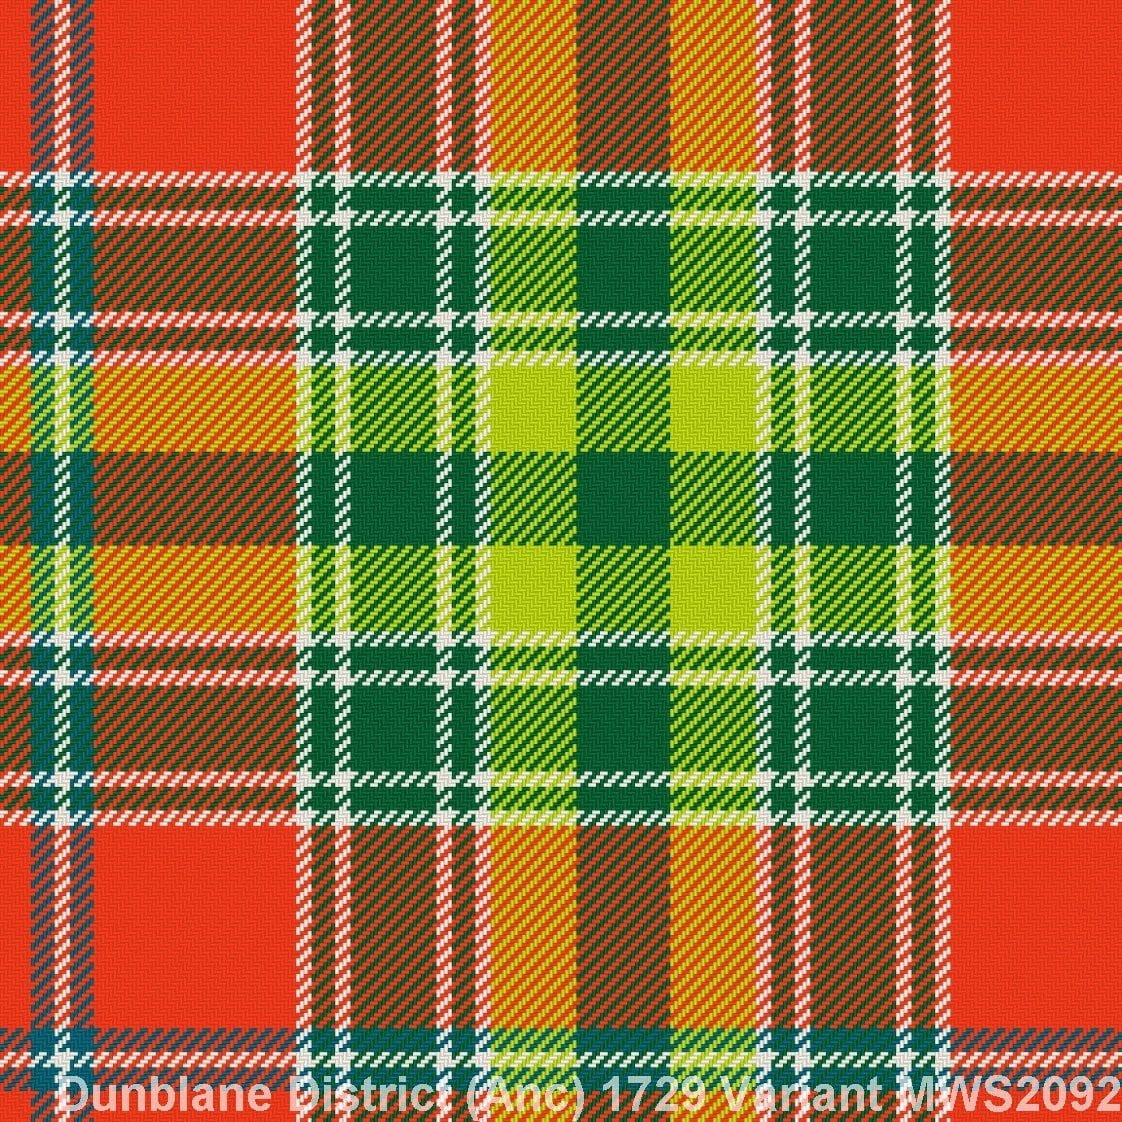 Dunblane District Ancient 1729 Variant